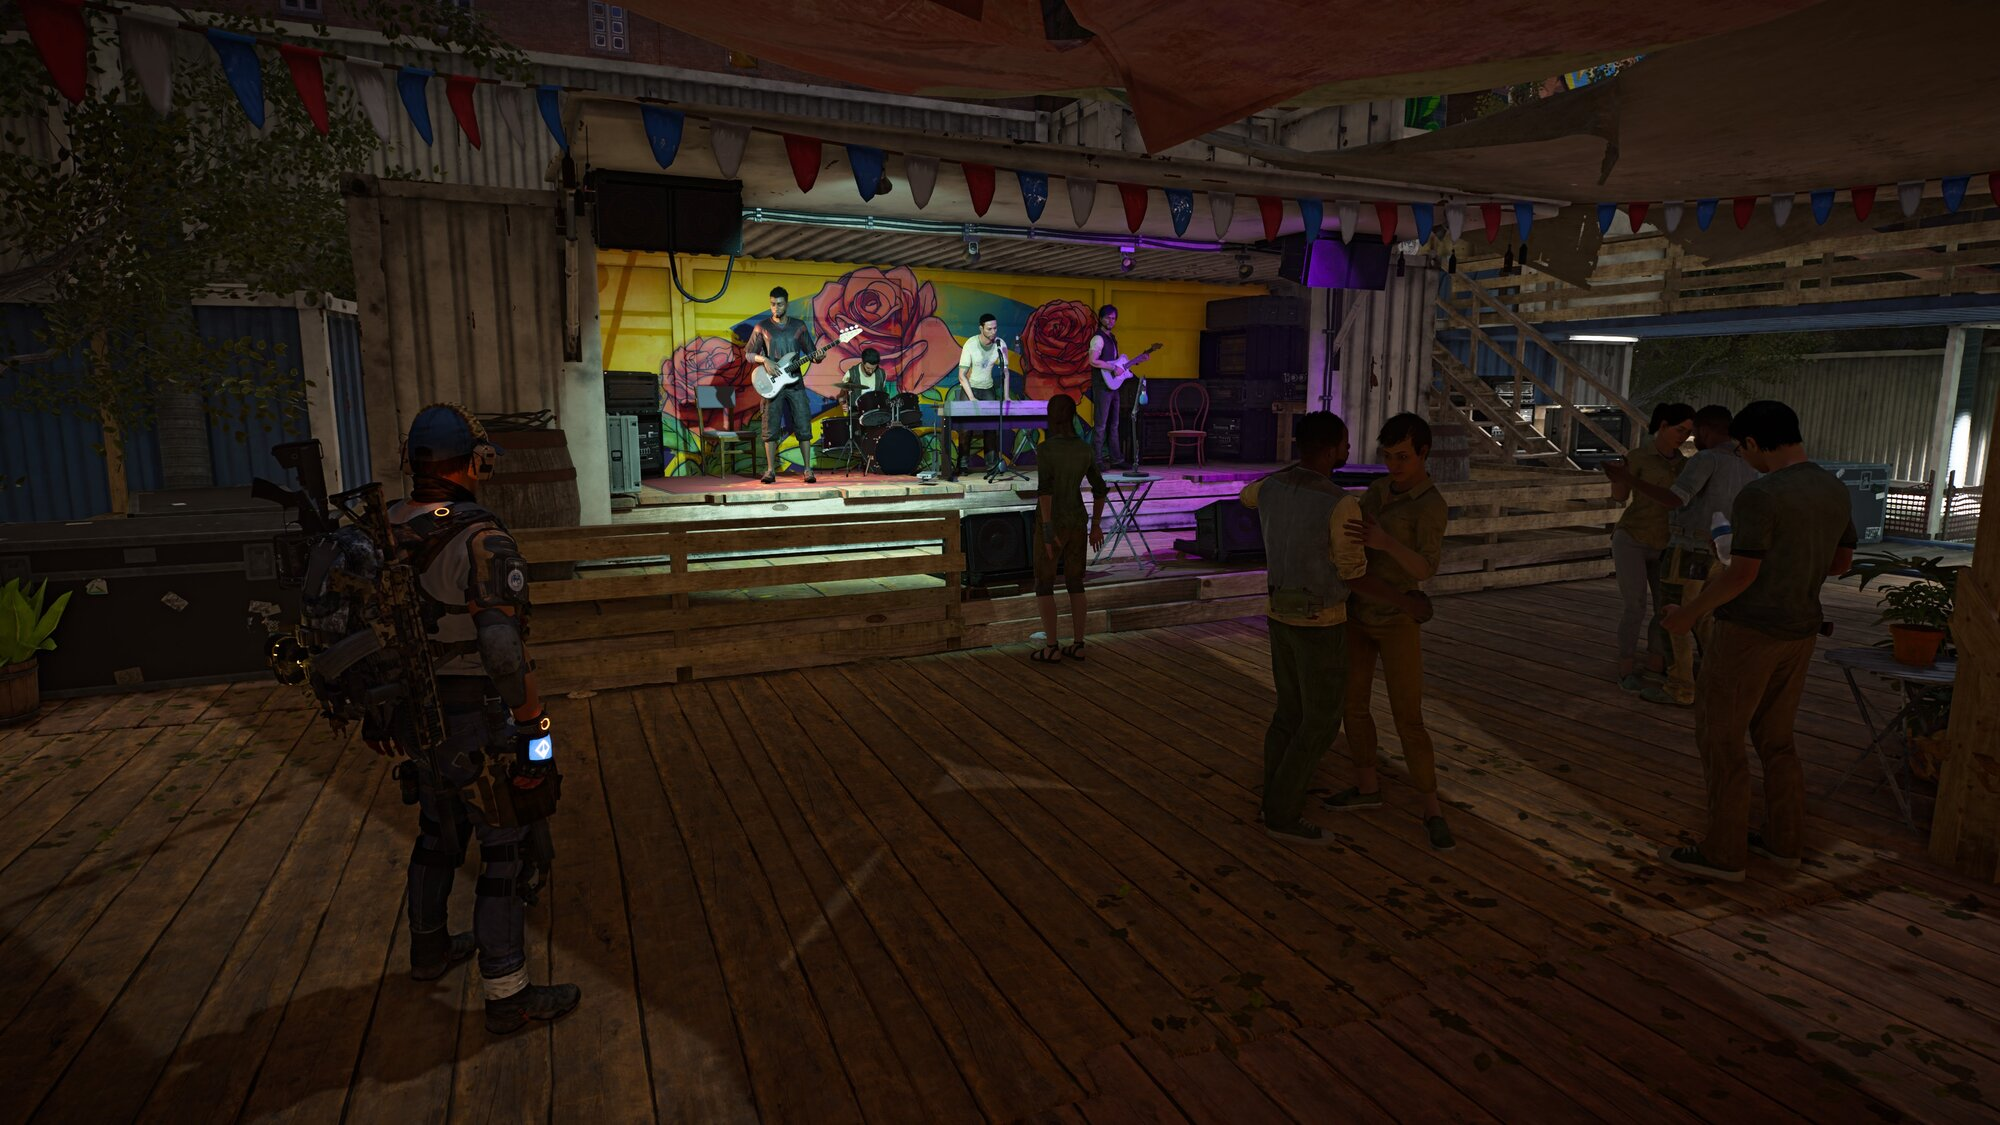 Tom Clancy's The Division 2_20190918_082724.jpg